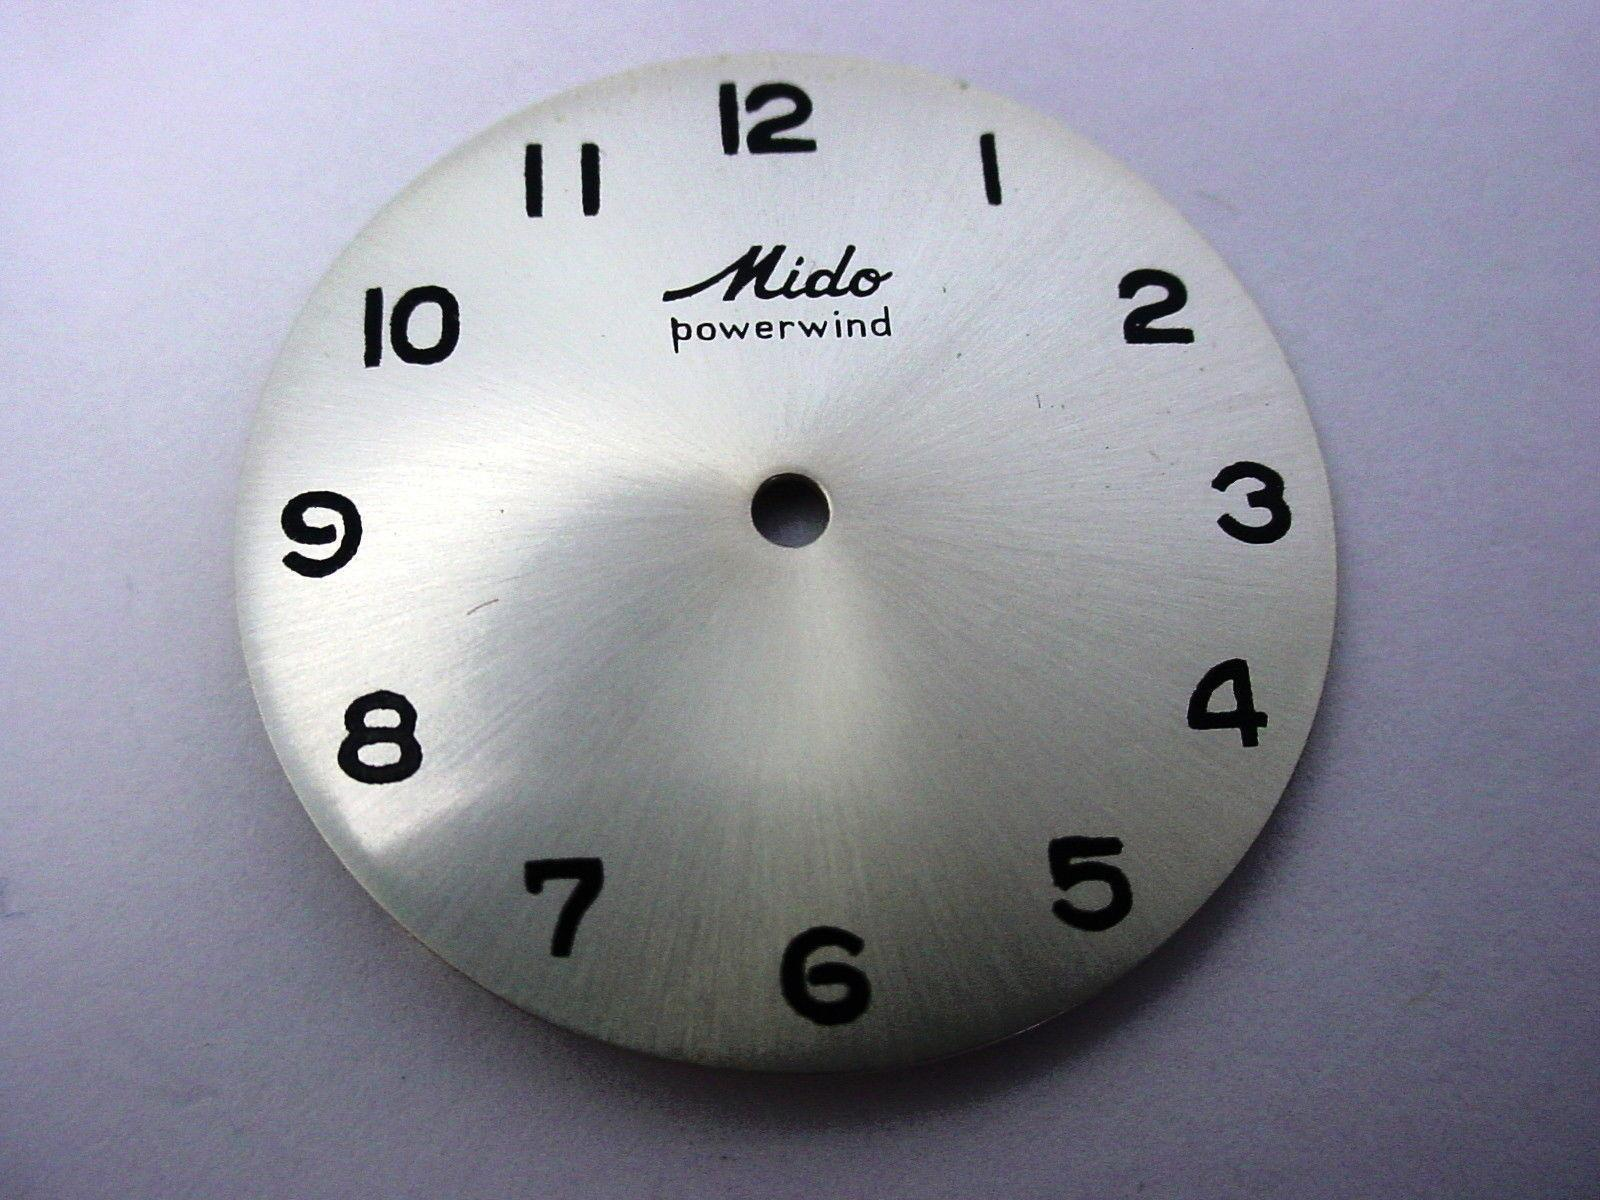 New Old Stock Powerwind Mido Pearl 28mm Vintage Watch Dial Black Numeral Markers